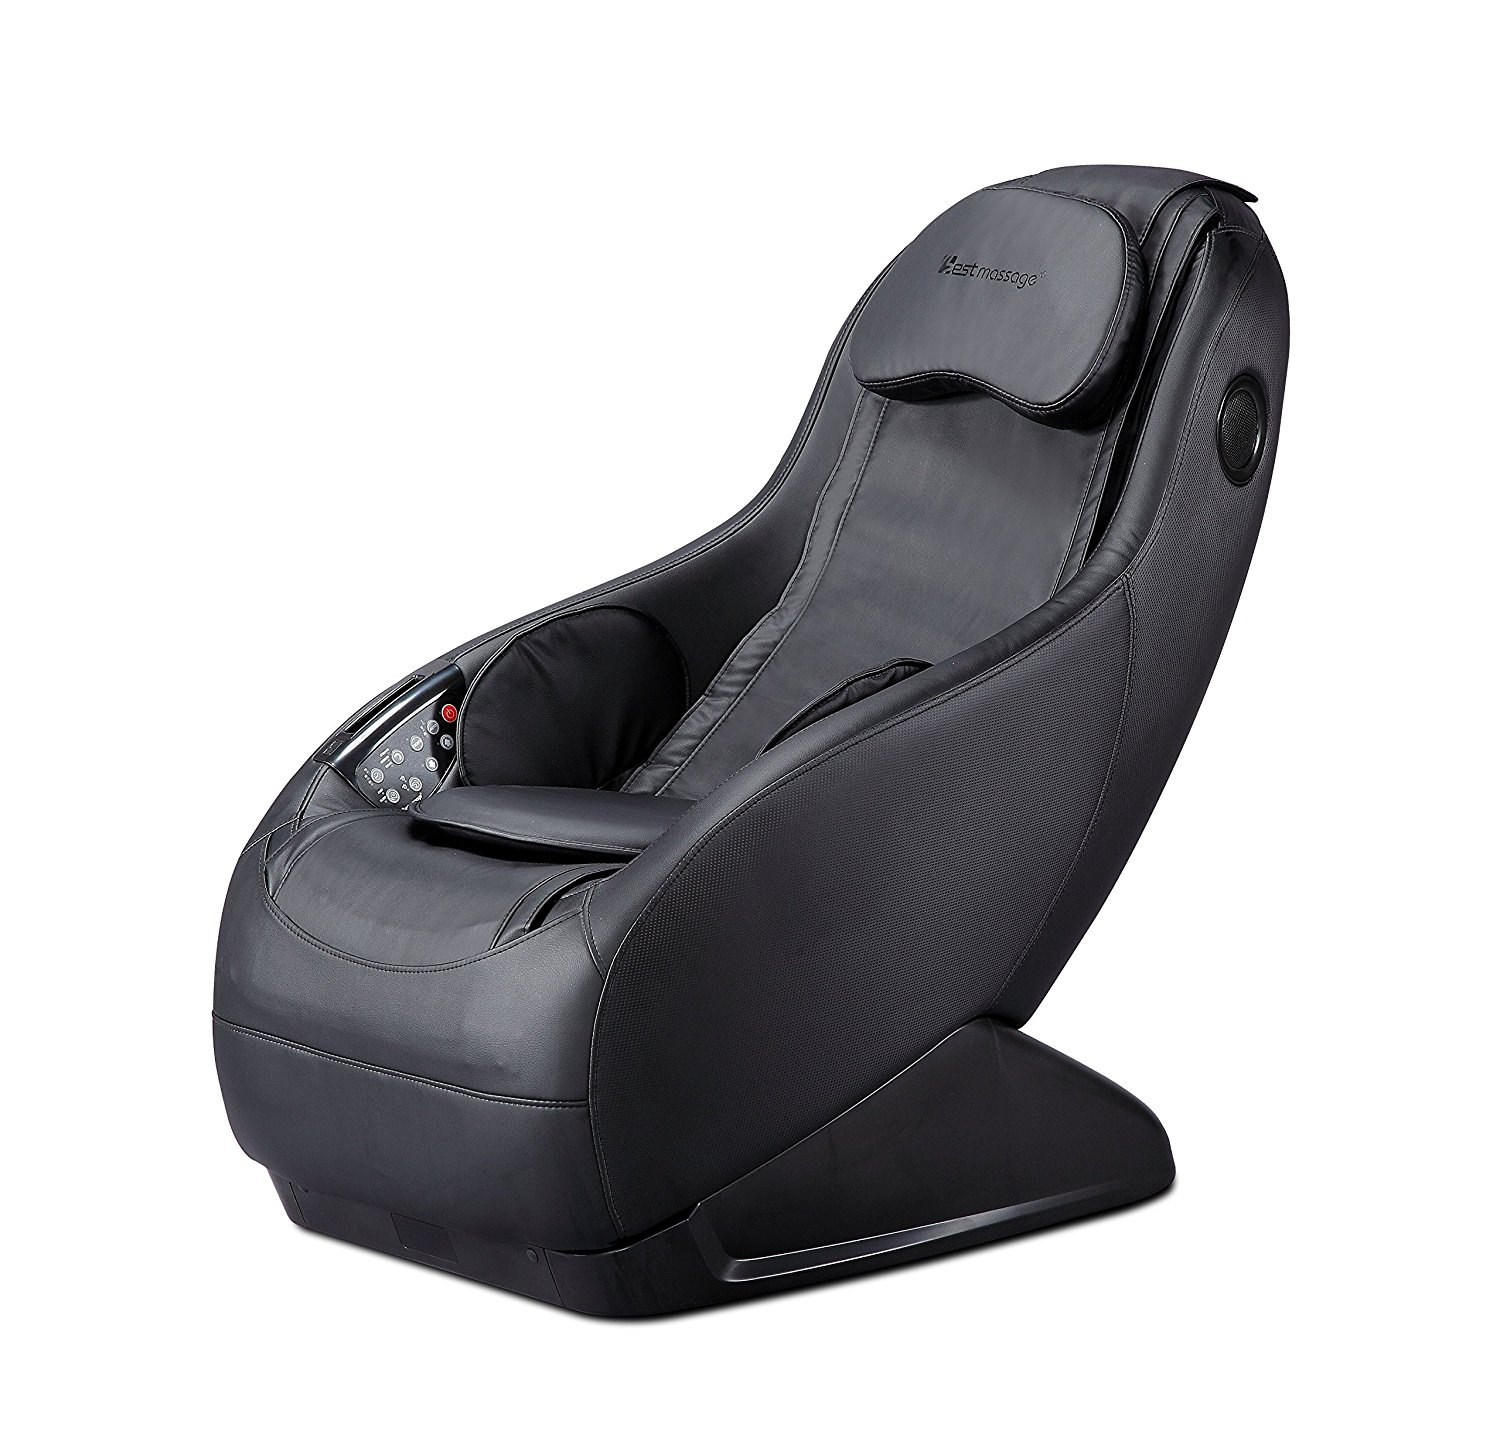 Deluxe Gaming Massage Chair